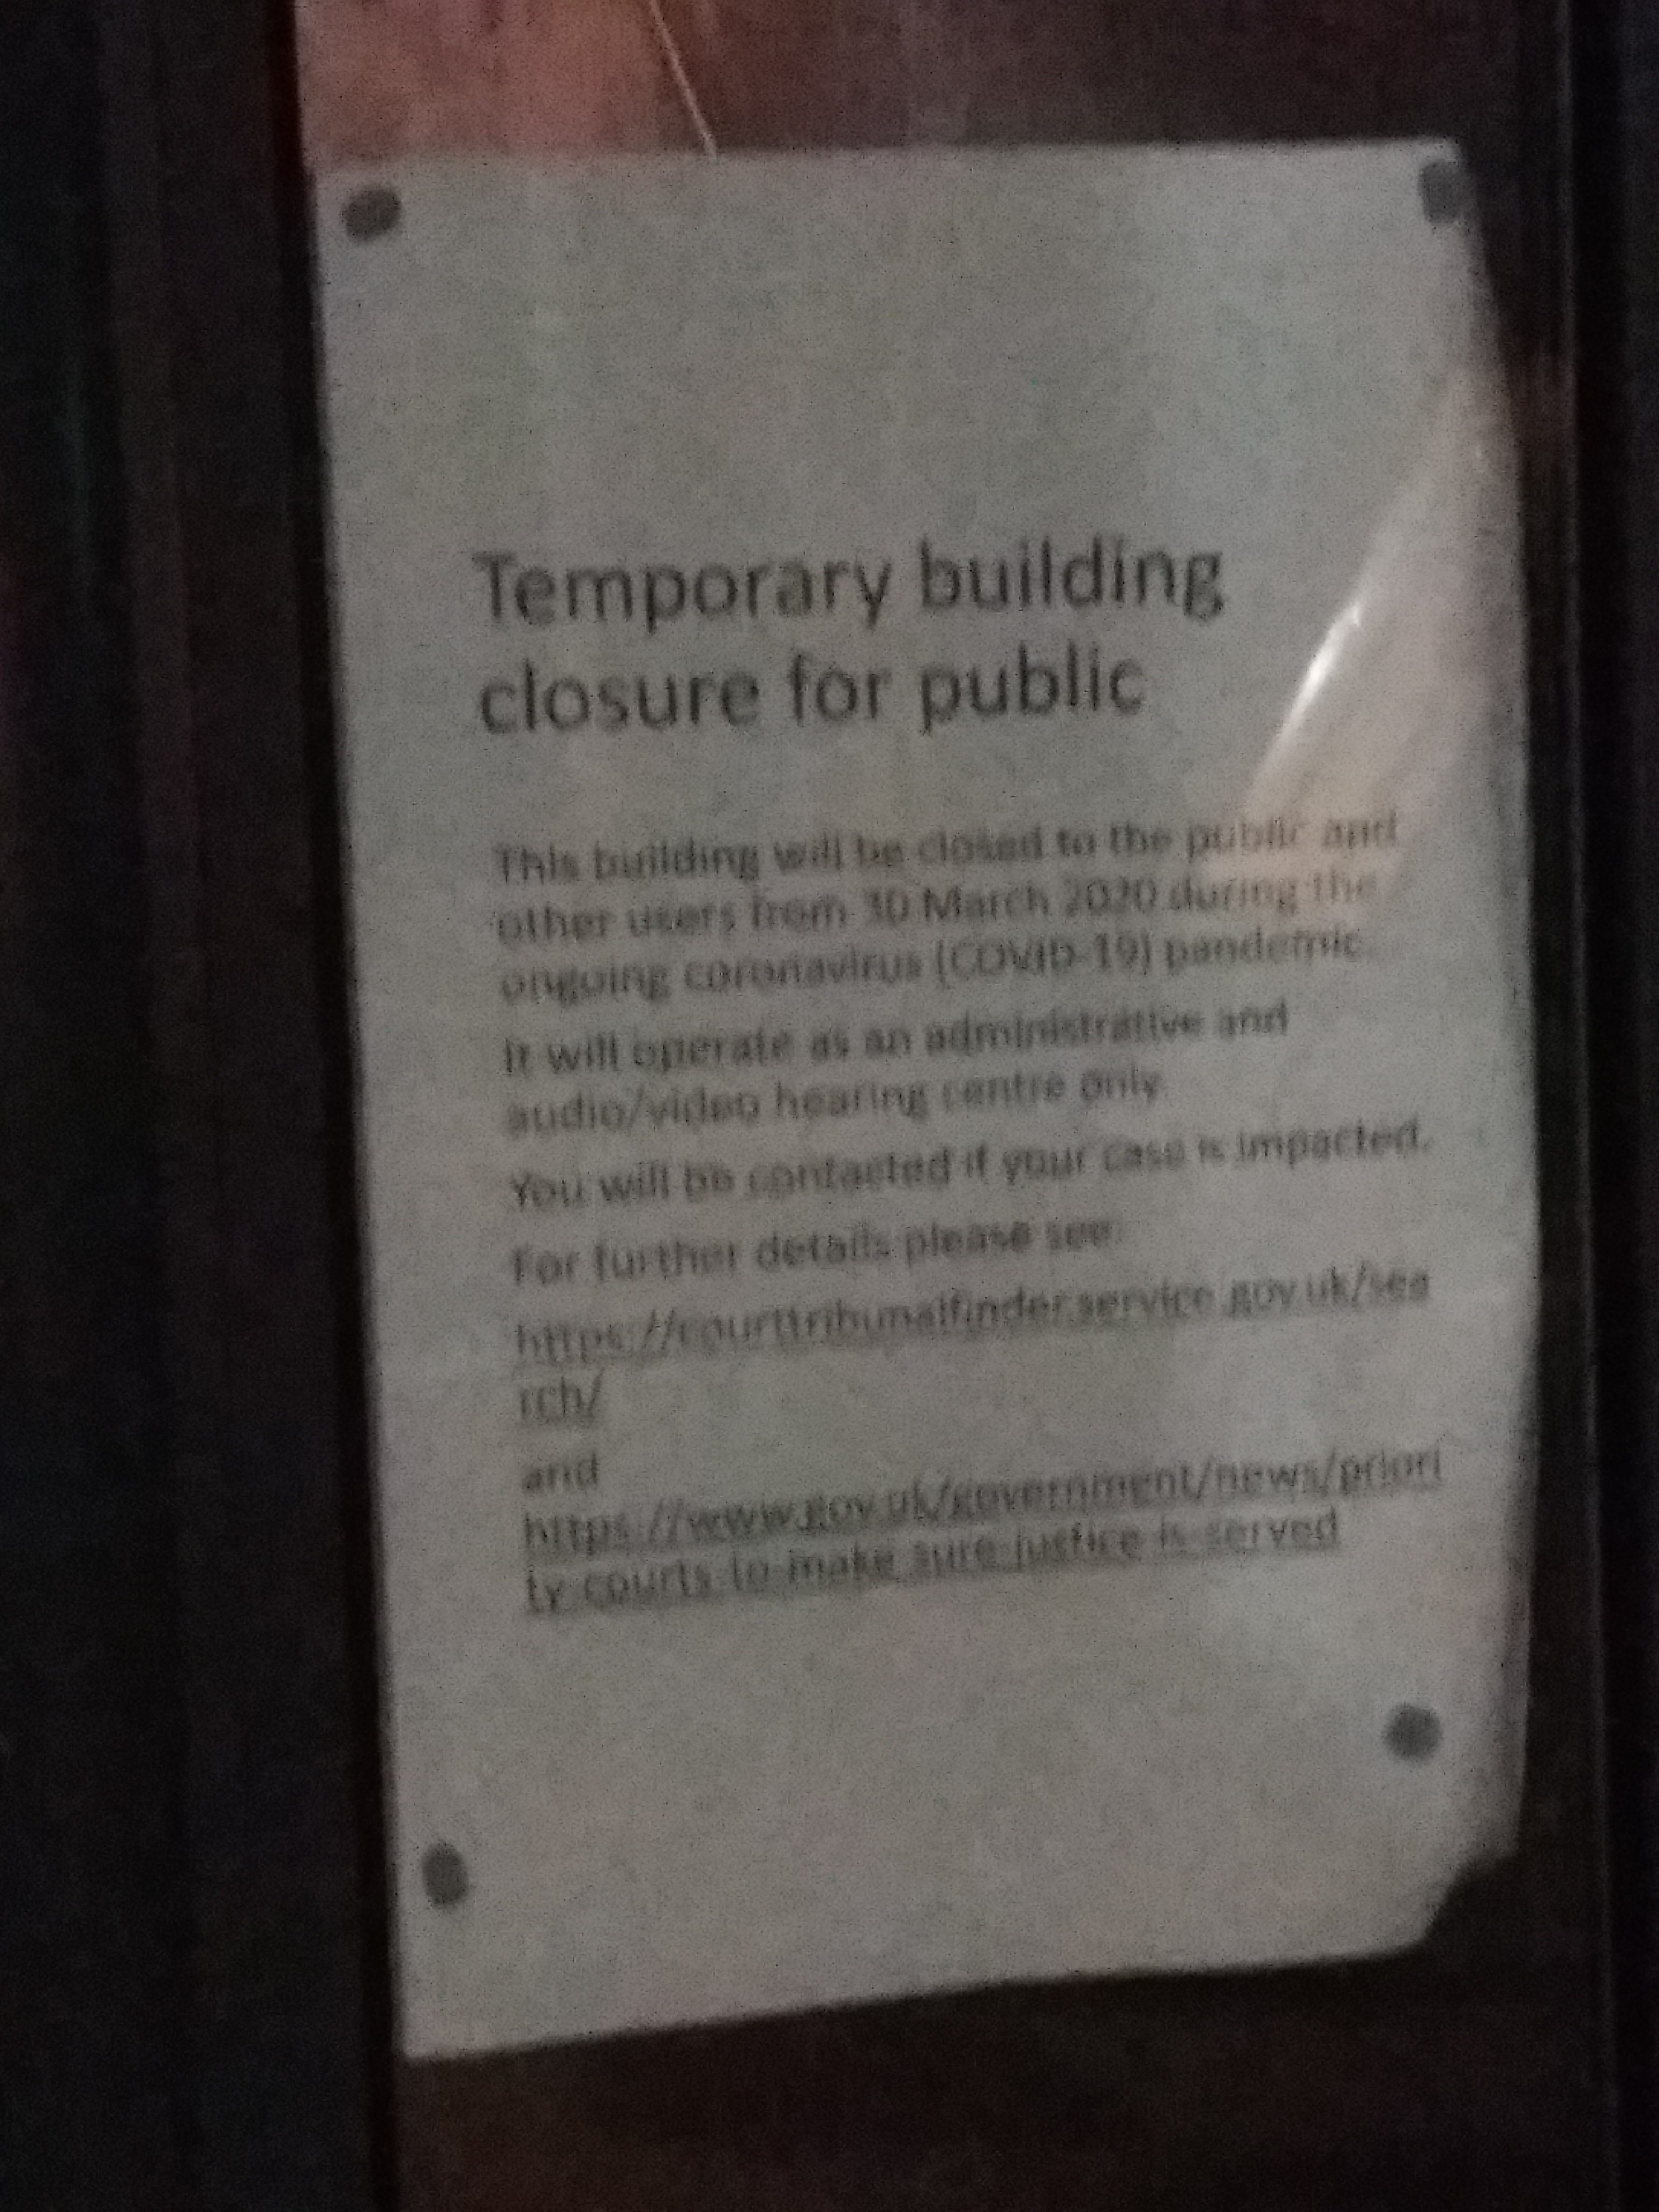 Courts and tribunal service at Victory House CLOSED